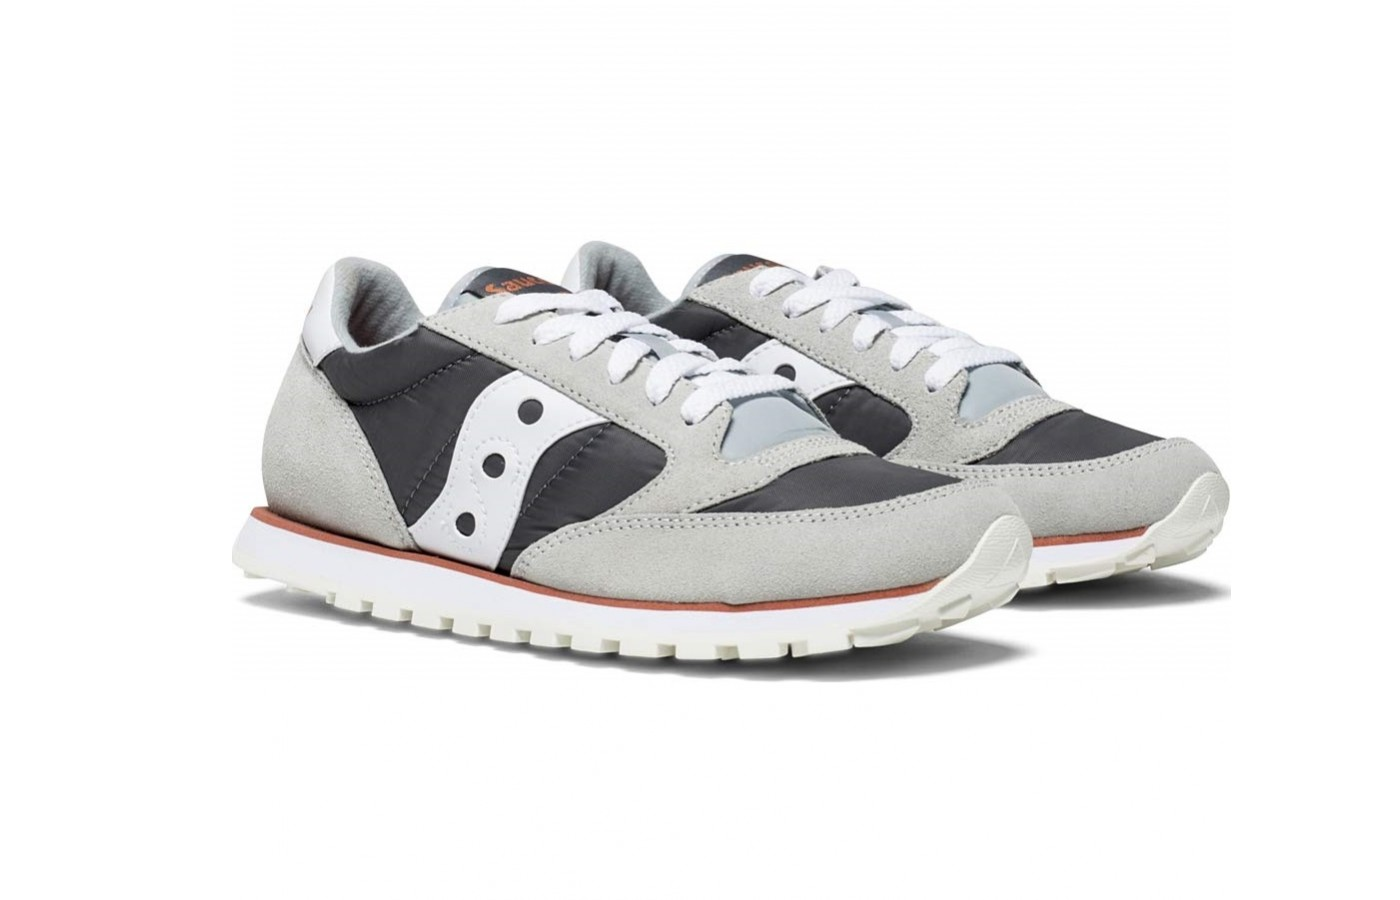 The Saucony Jazz Low Pro offers a slim fitting nylon for a more fashionable design.